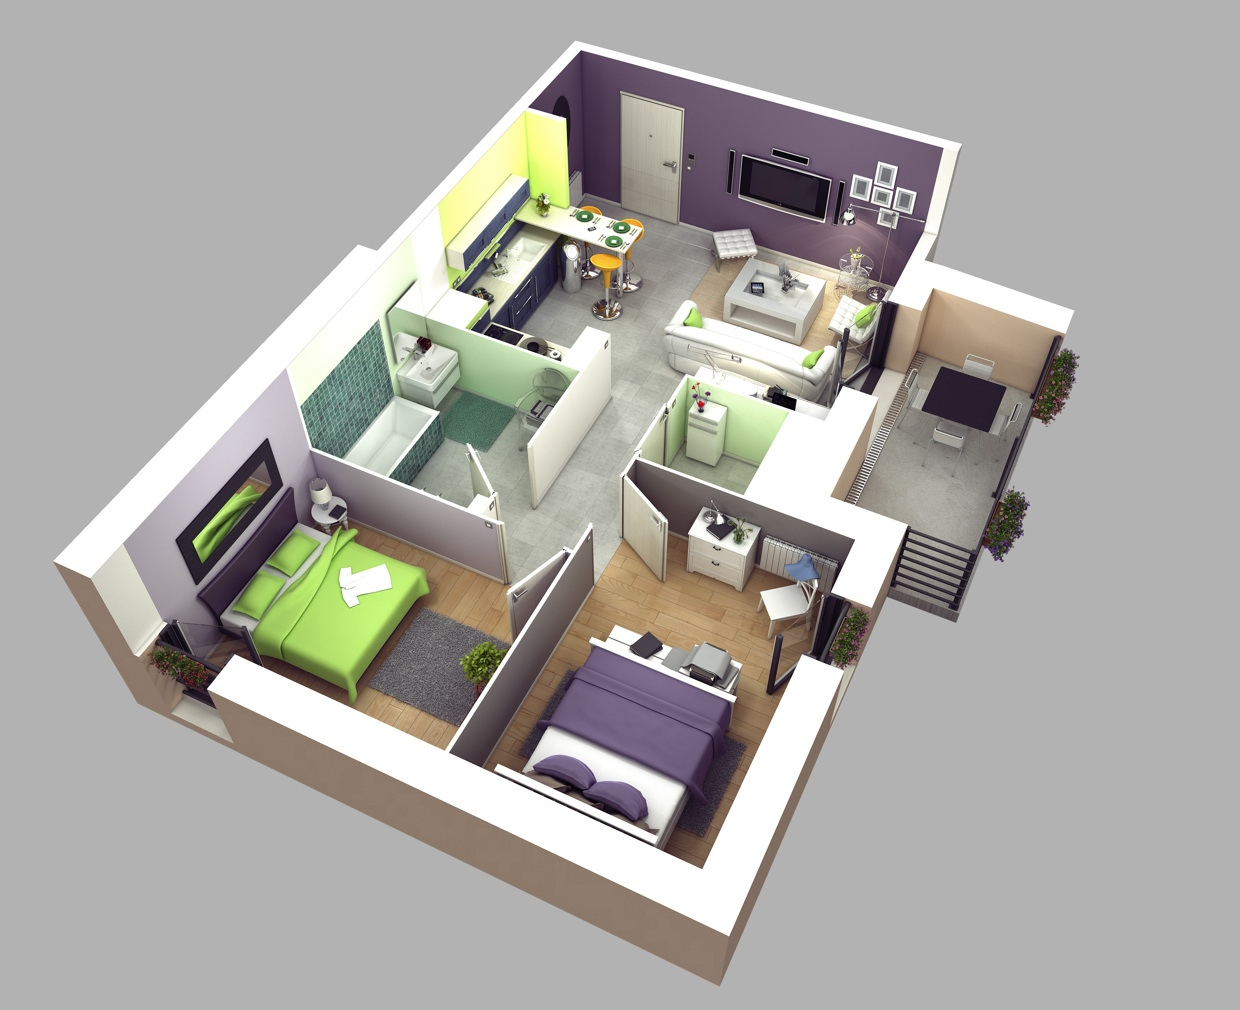 5-Two-bedroom-house-plan